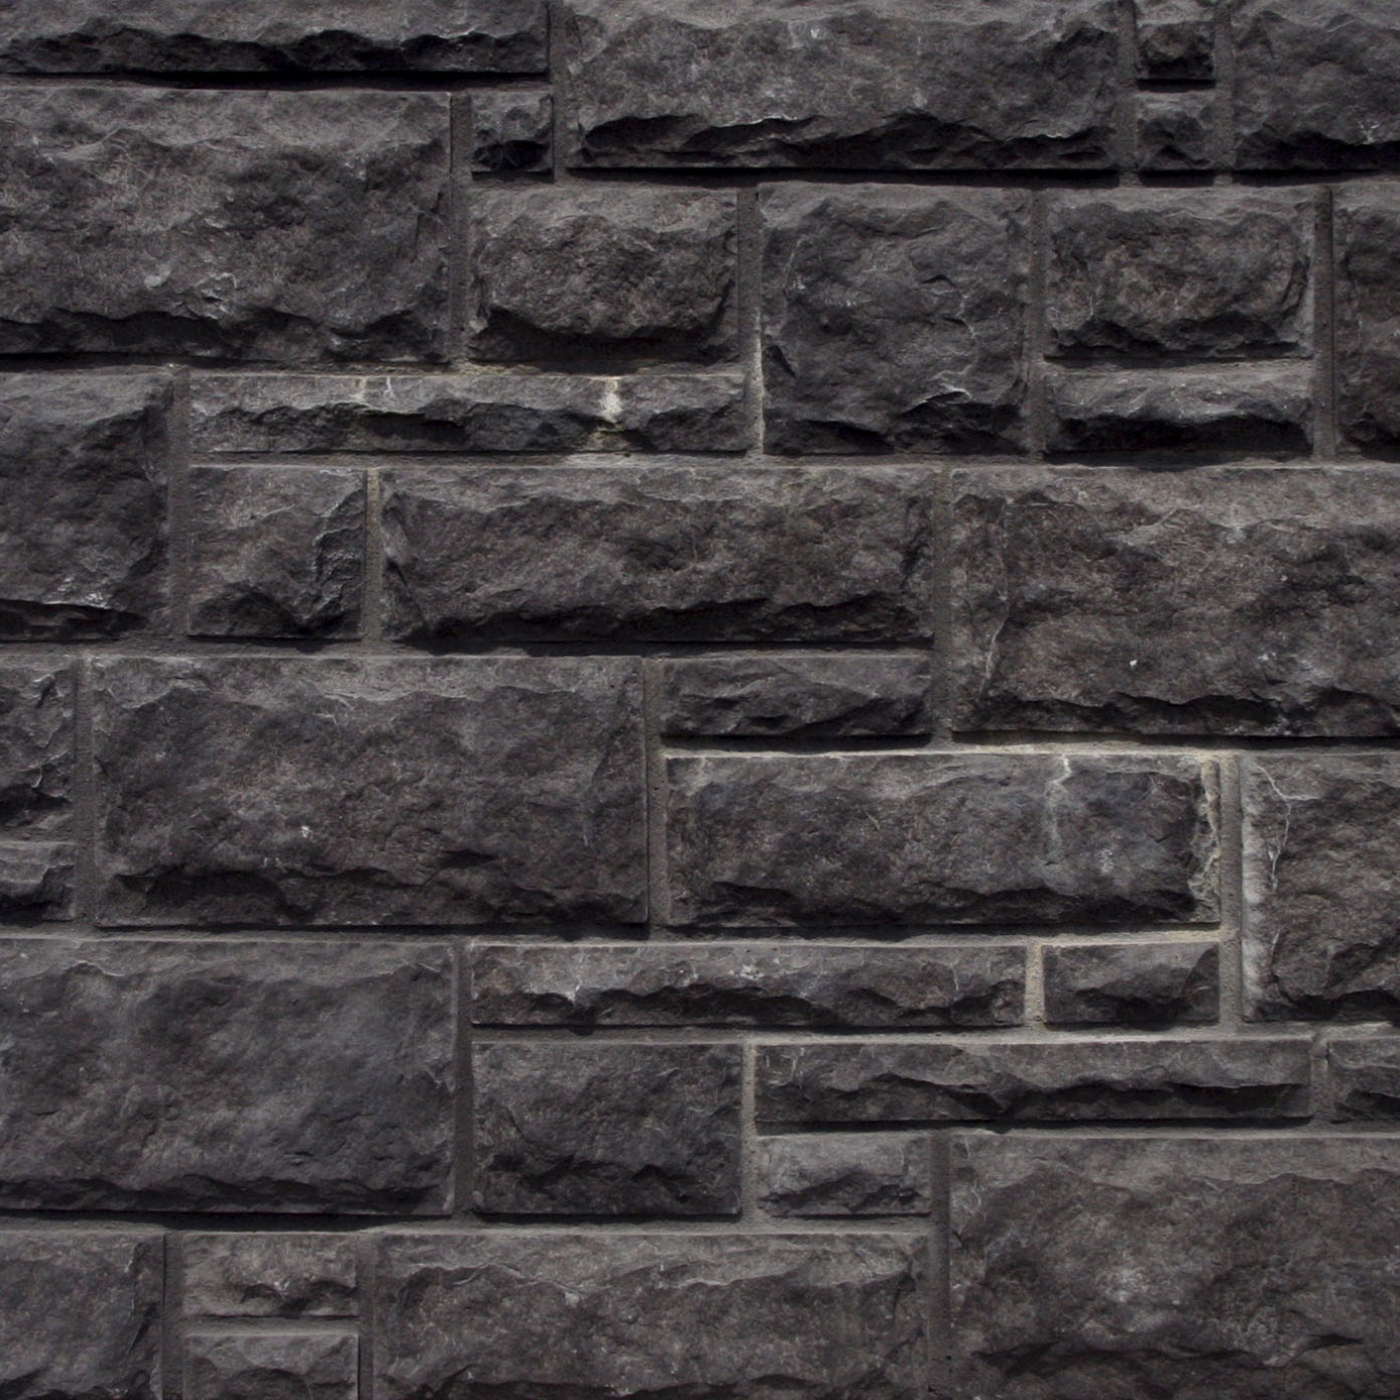 Black Castle Rock Cut Stone Stone Veneer from Environmental StoneWorks